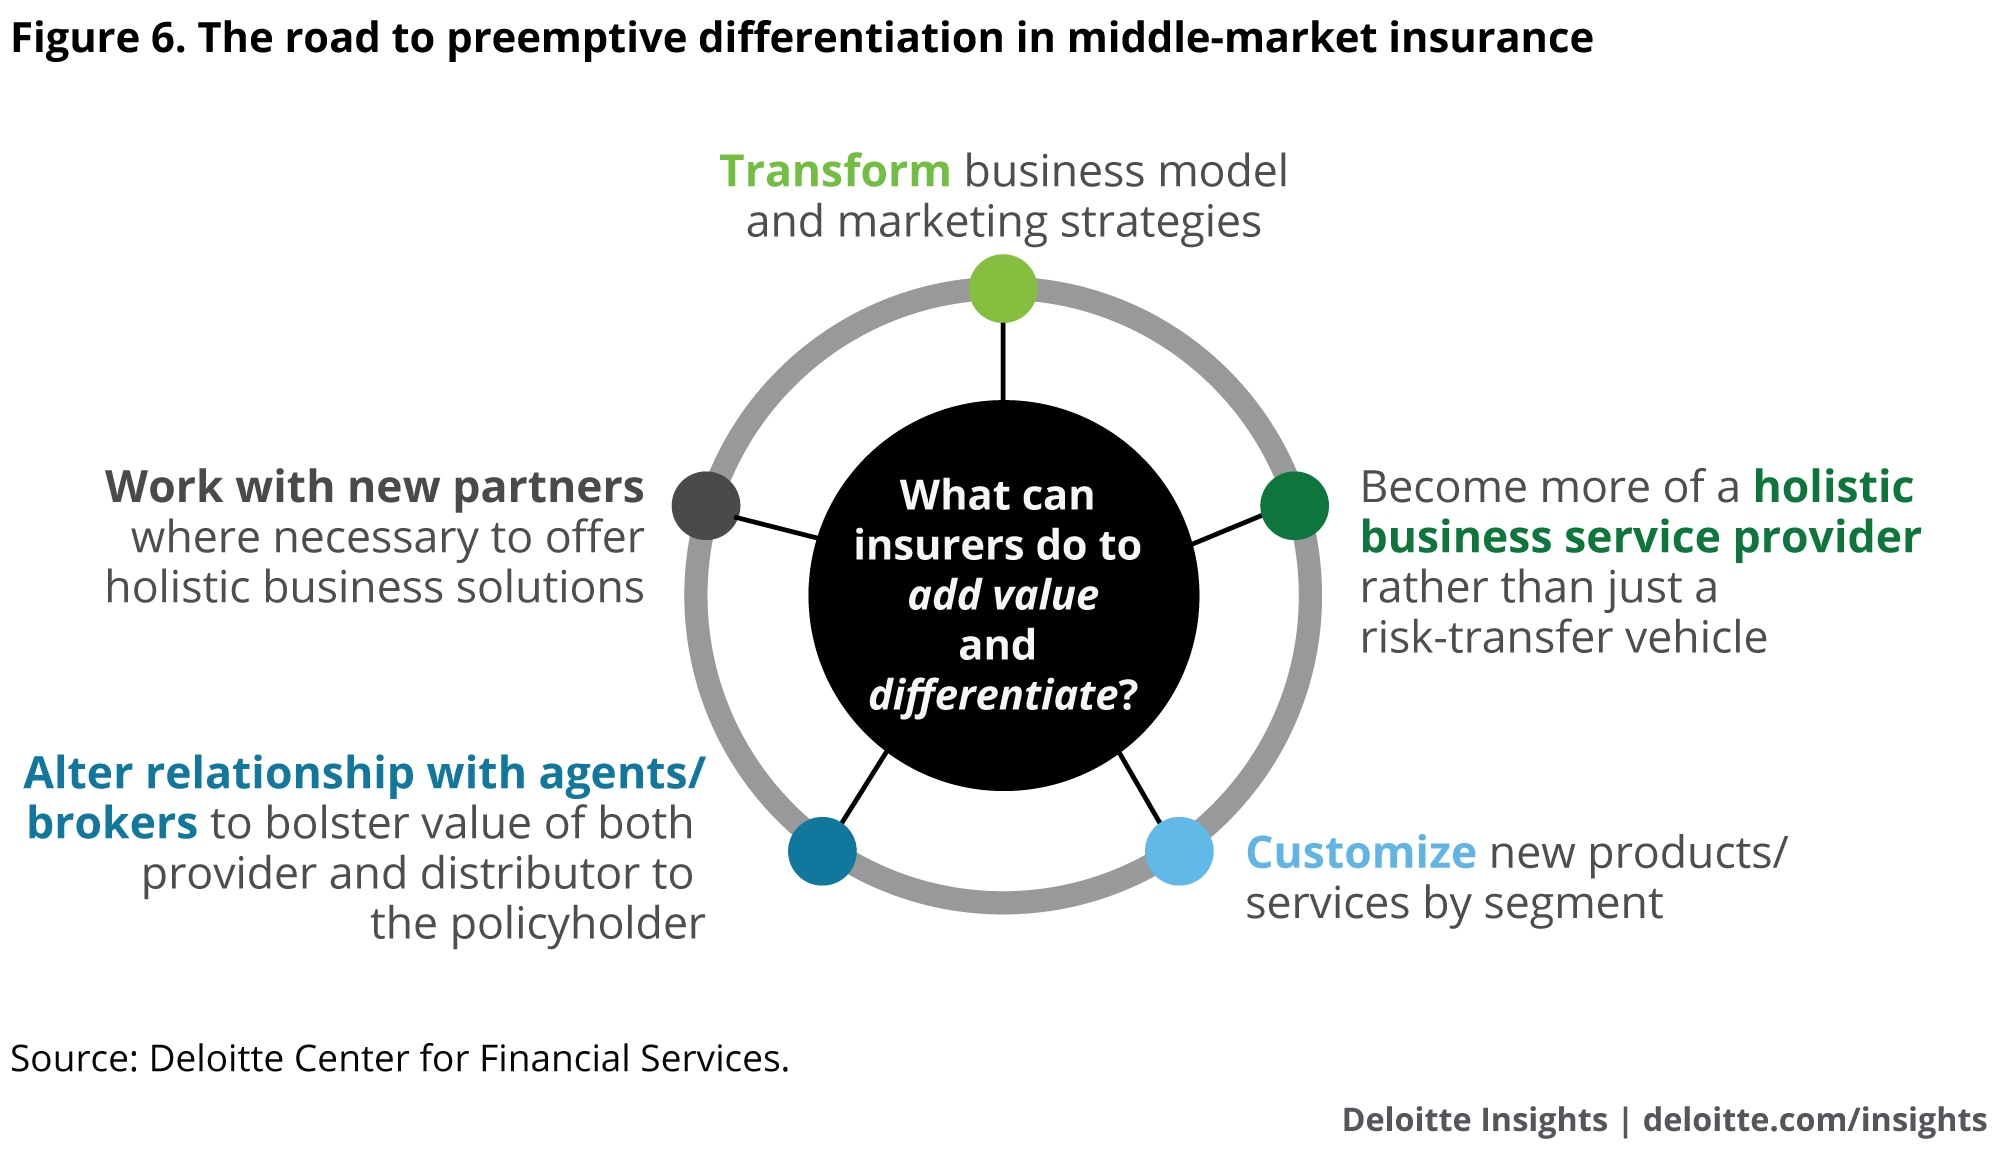 The road to preemptive differentiation in middle-market insurance